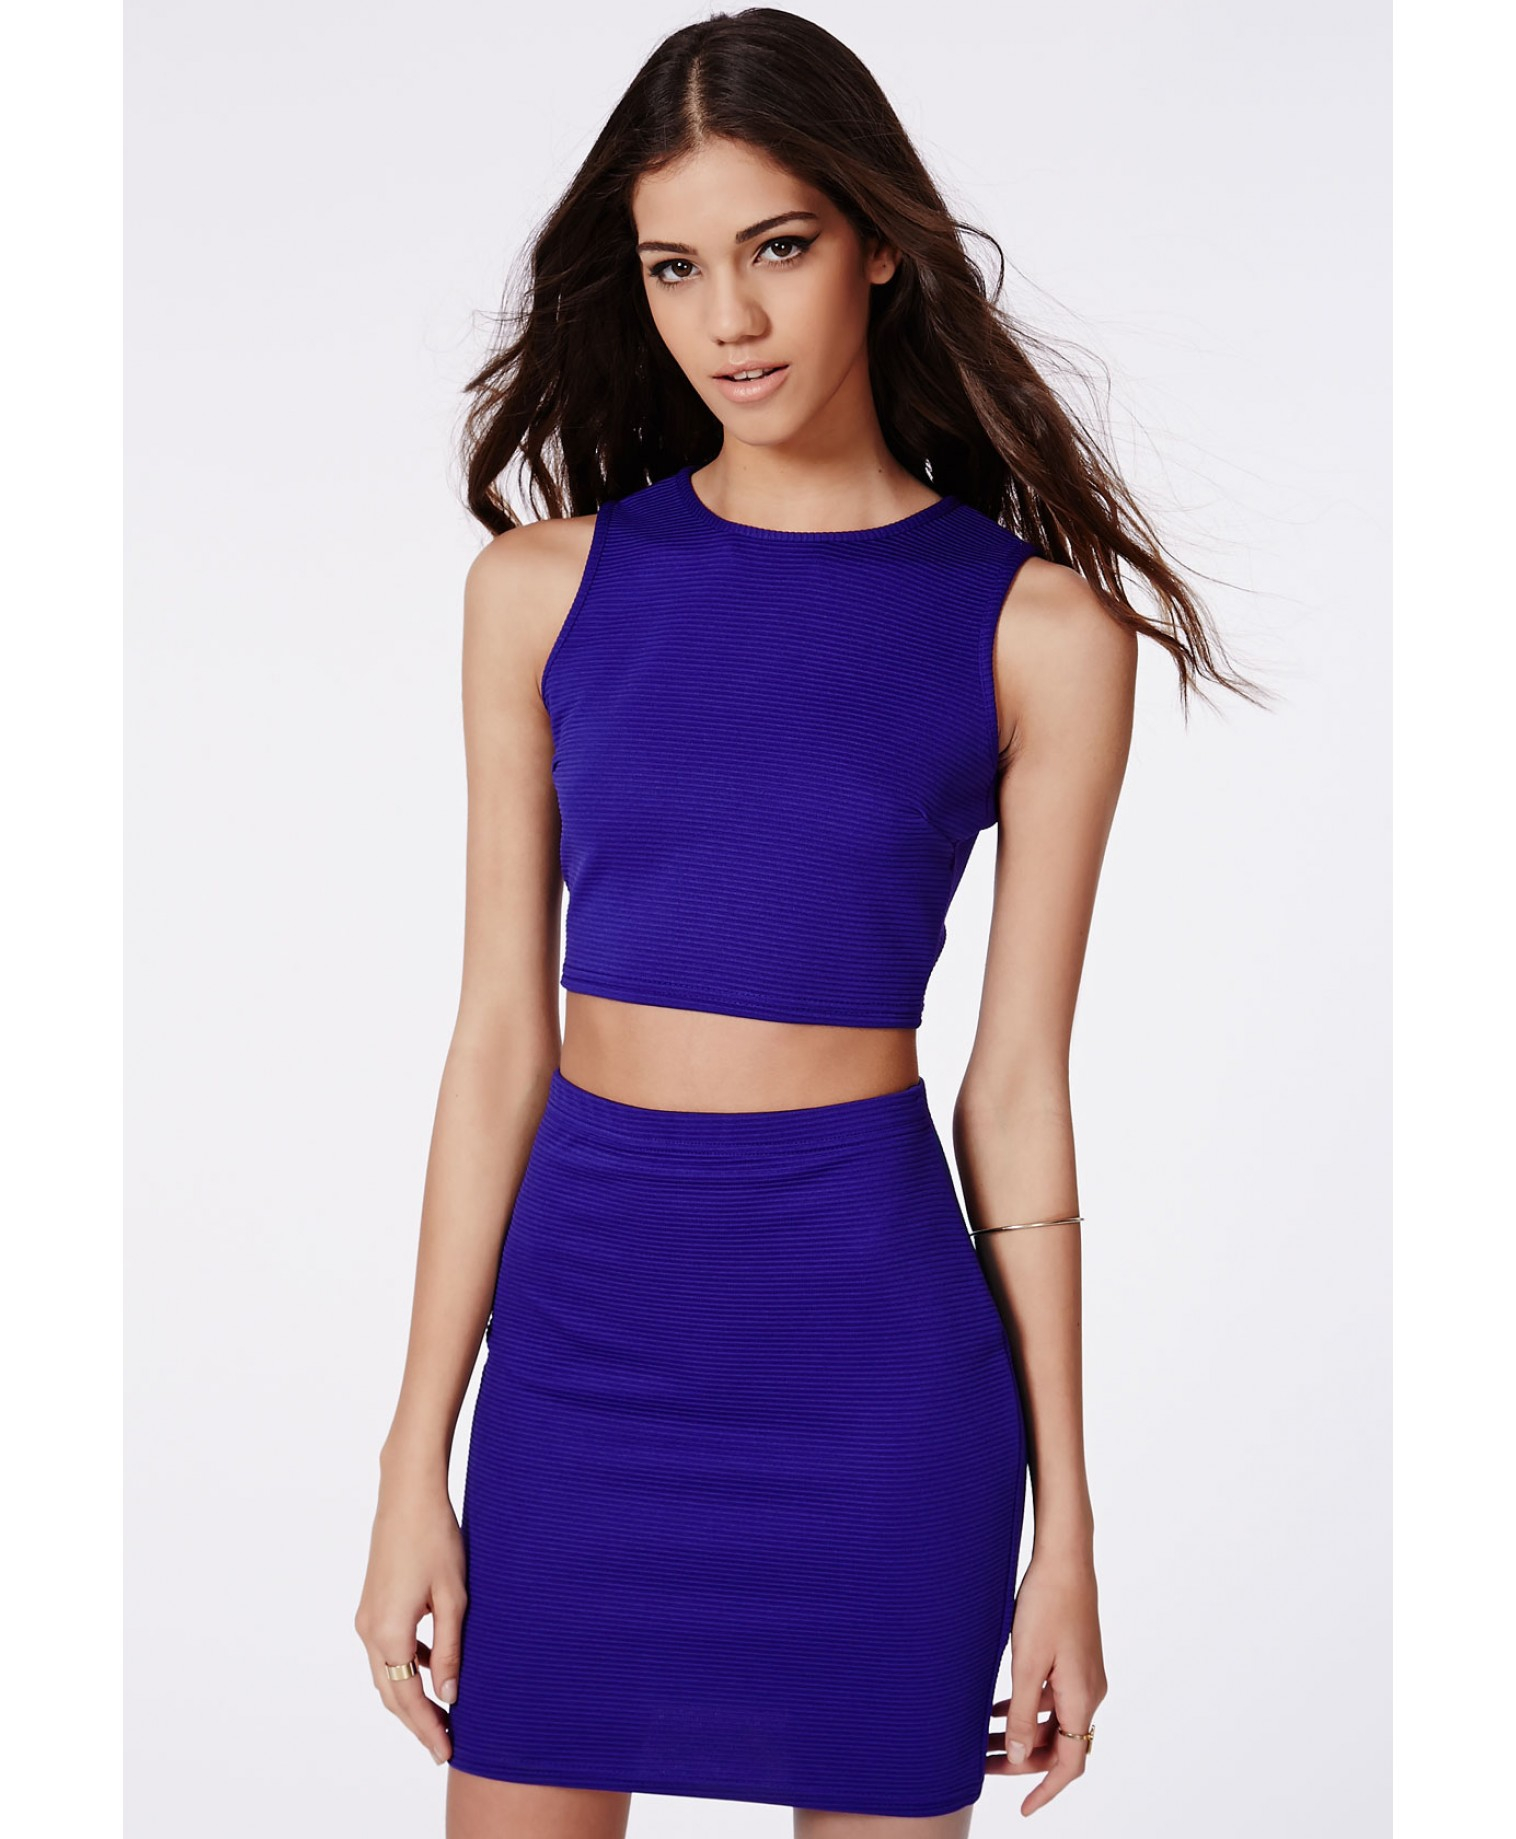 Missguided Polly Ribbed Two Piece Bodycon Dress Cobalt Blue in ...